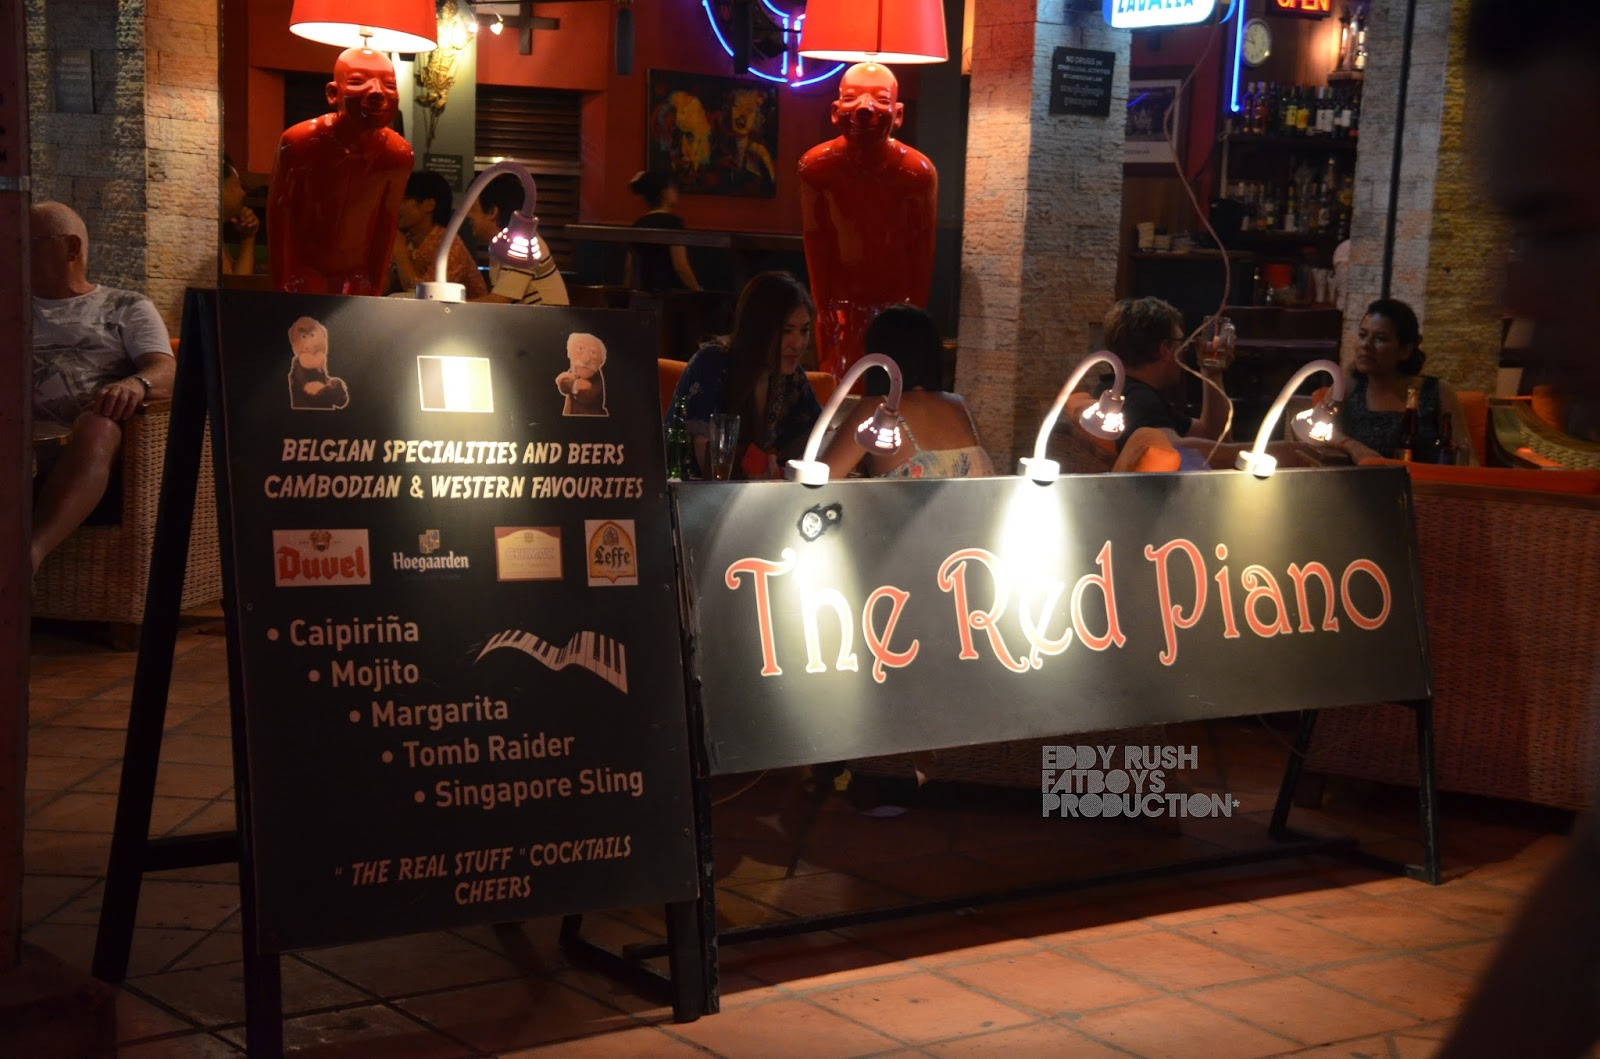 The Red Piano is one of the highlights of Siem reap nightlife